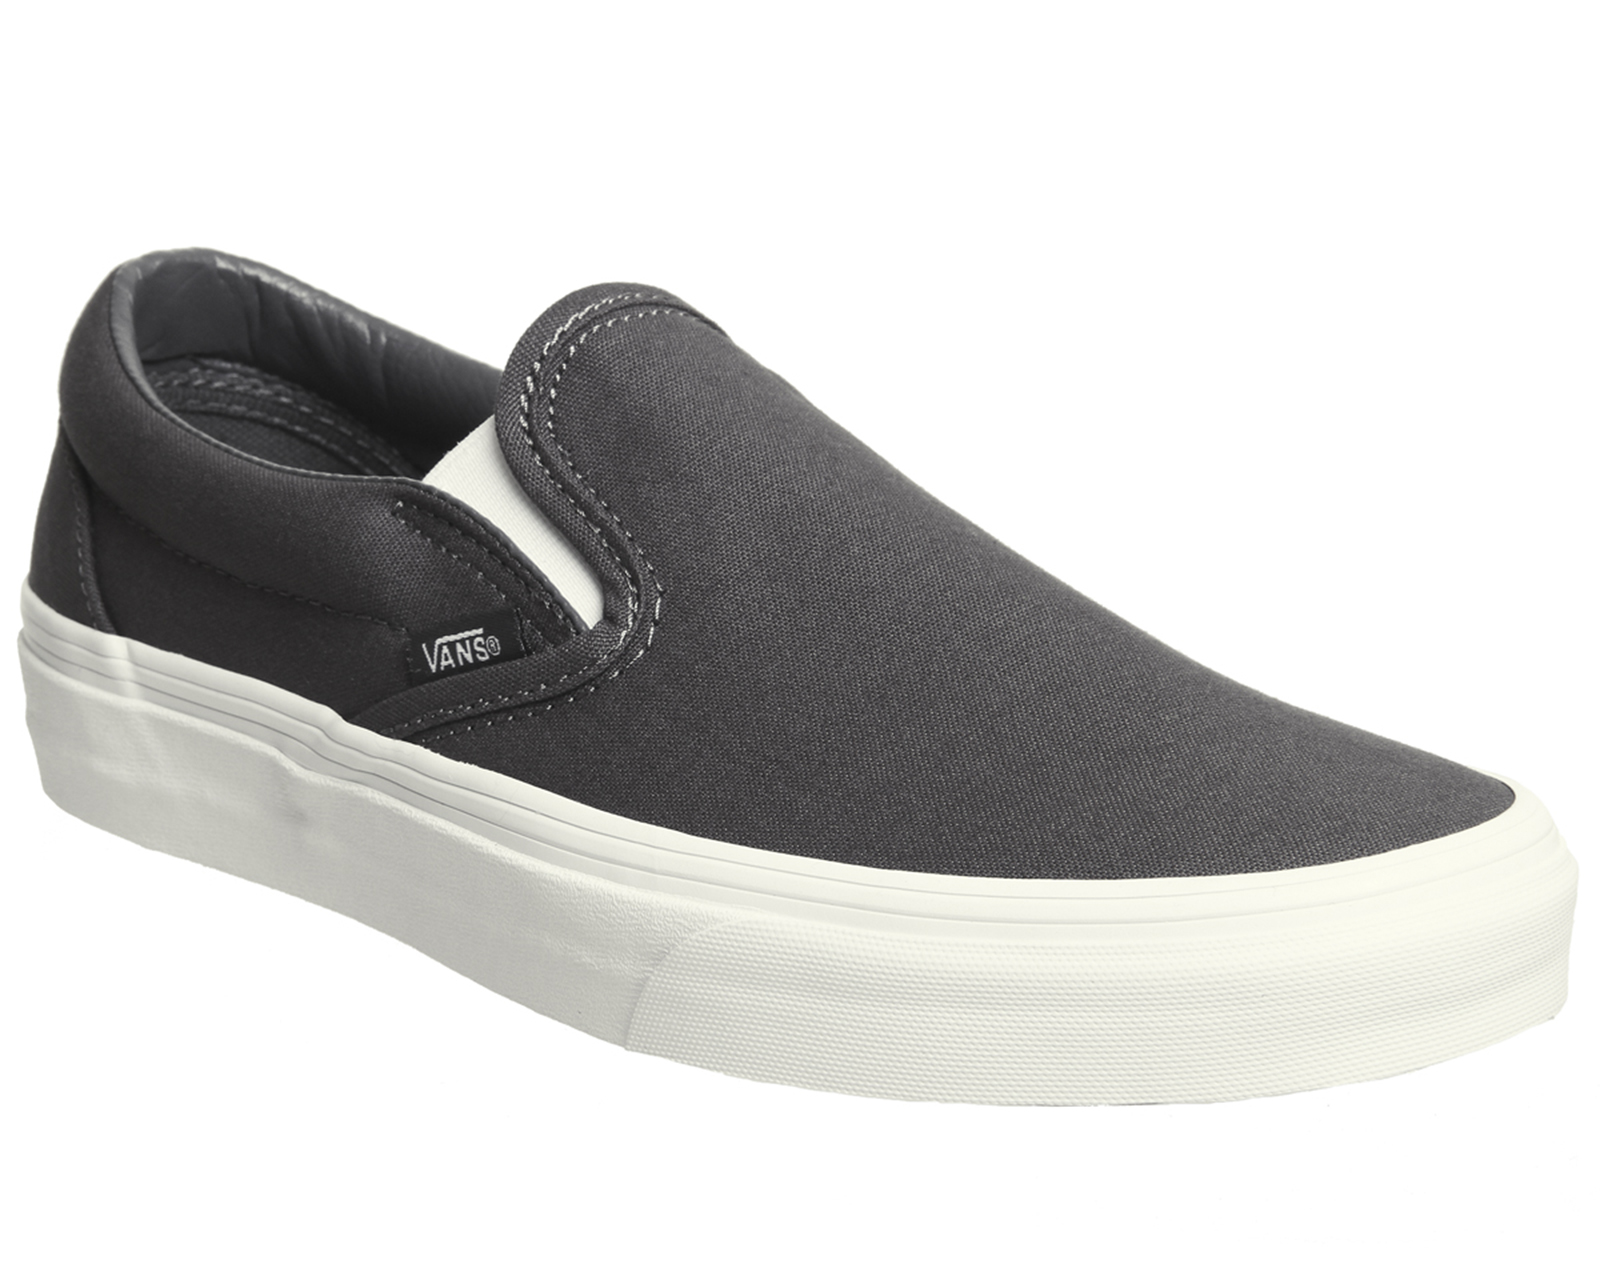 Sentinel Vans Vans Classic Slip On Trainers Asphalt Trainers Shoes fe93d9c12